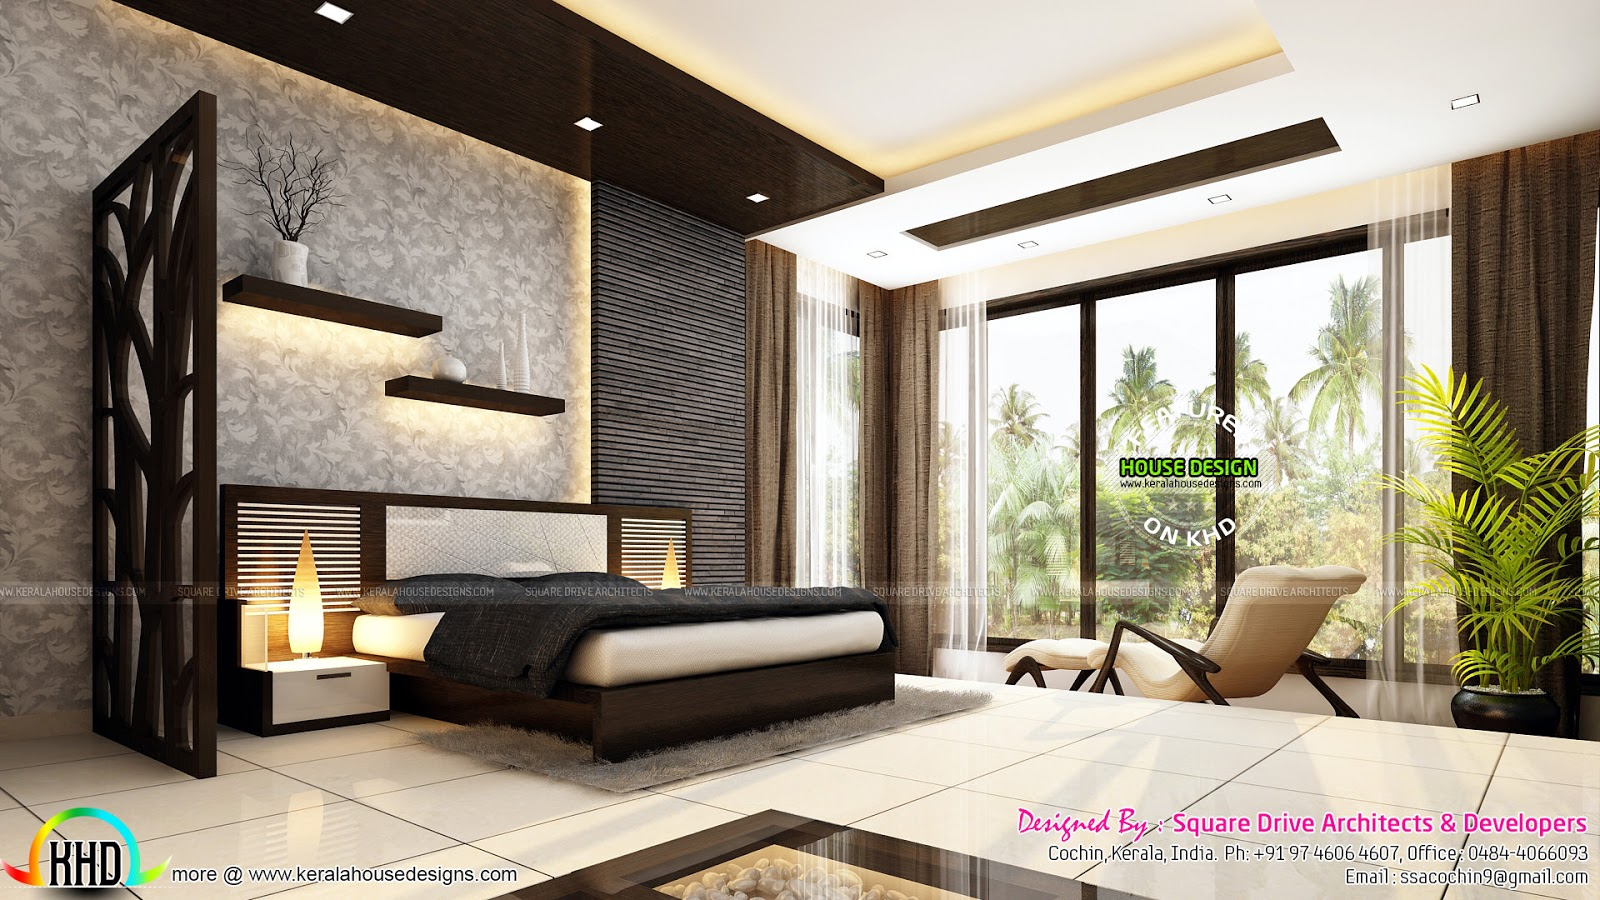 Very beautiful modern interior designs kerala home for Beautiful living room interior designs